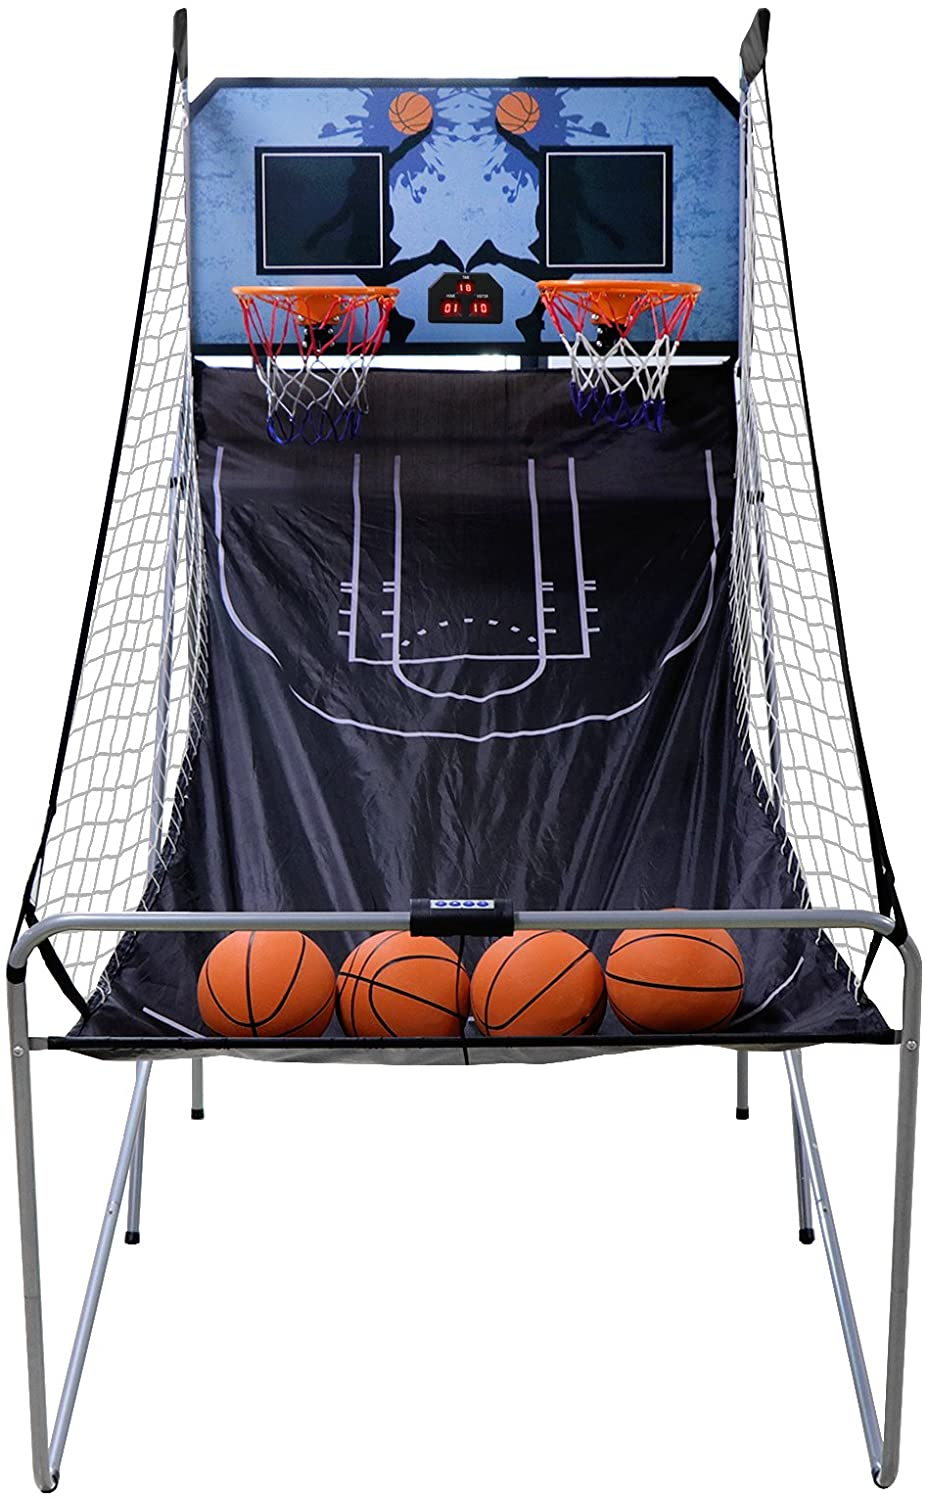 JupiterForce Foldable Indoor Basketball Game Arcade Game, Double Mode with LED Scoreboard